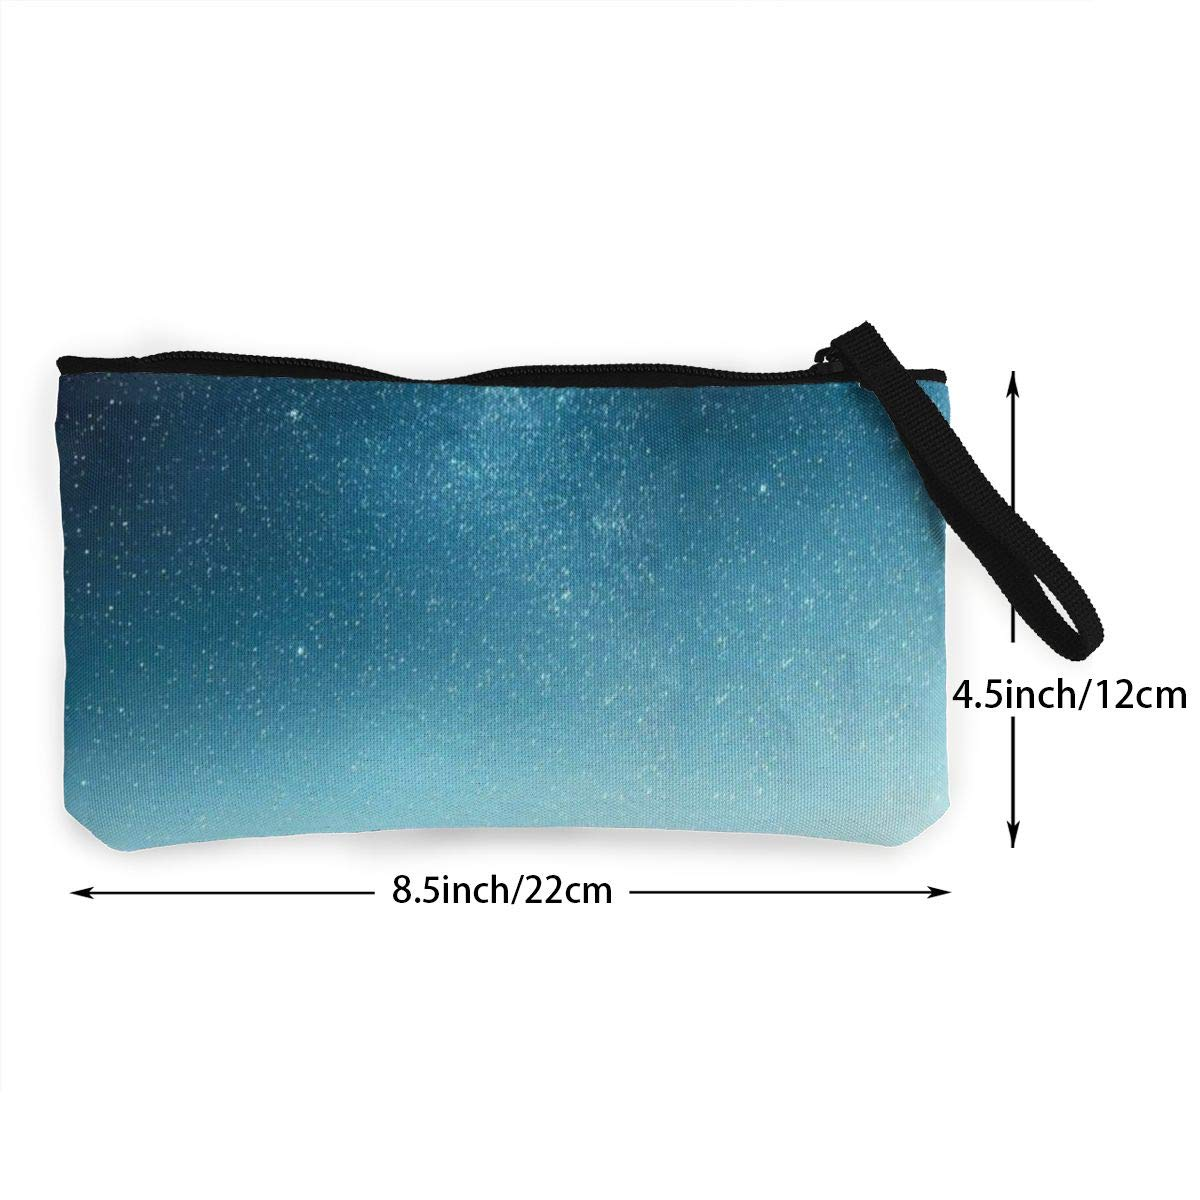 Make Up Bag,Cellphone Bag With Handle Galactic Starry Sky Zipper Canvas Coin Purse Wallet